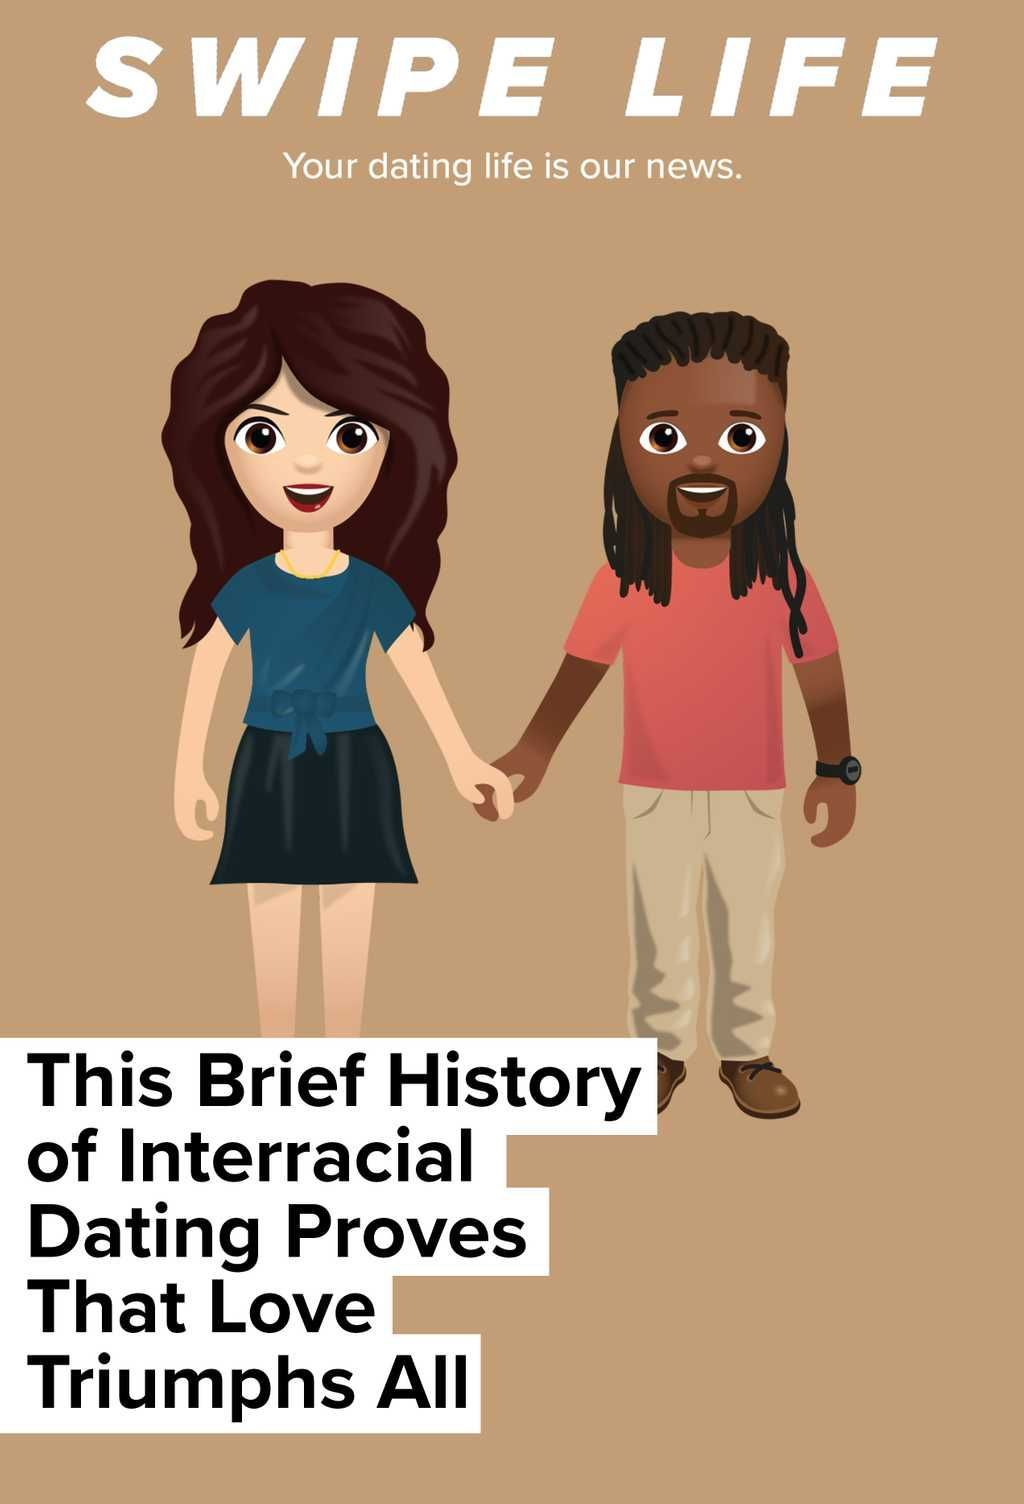 This Brief History of Interracial Dating Proves That Love